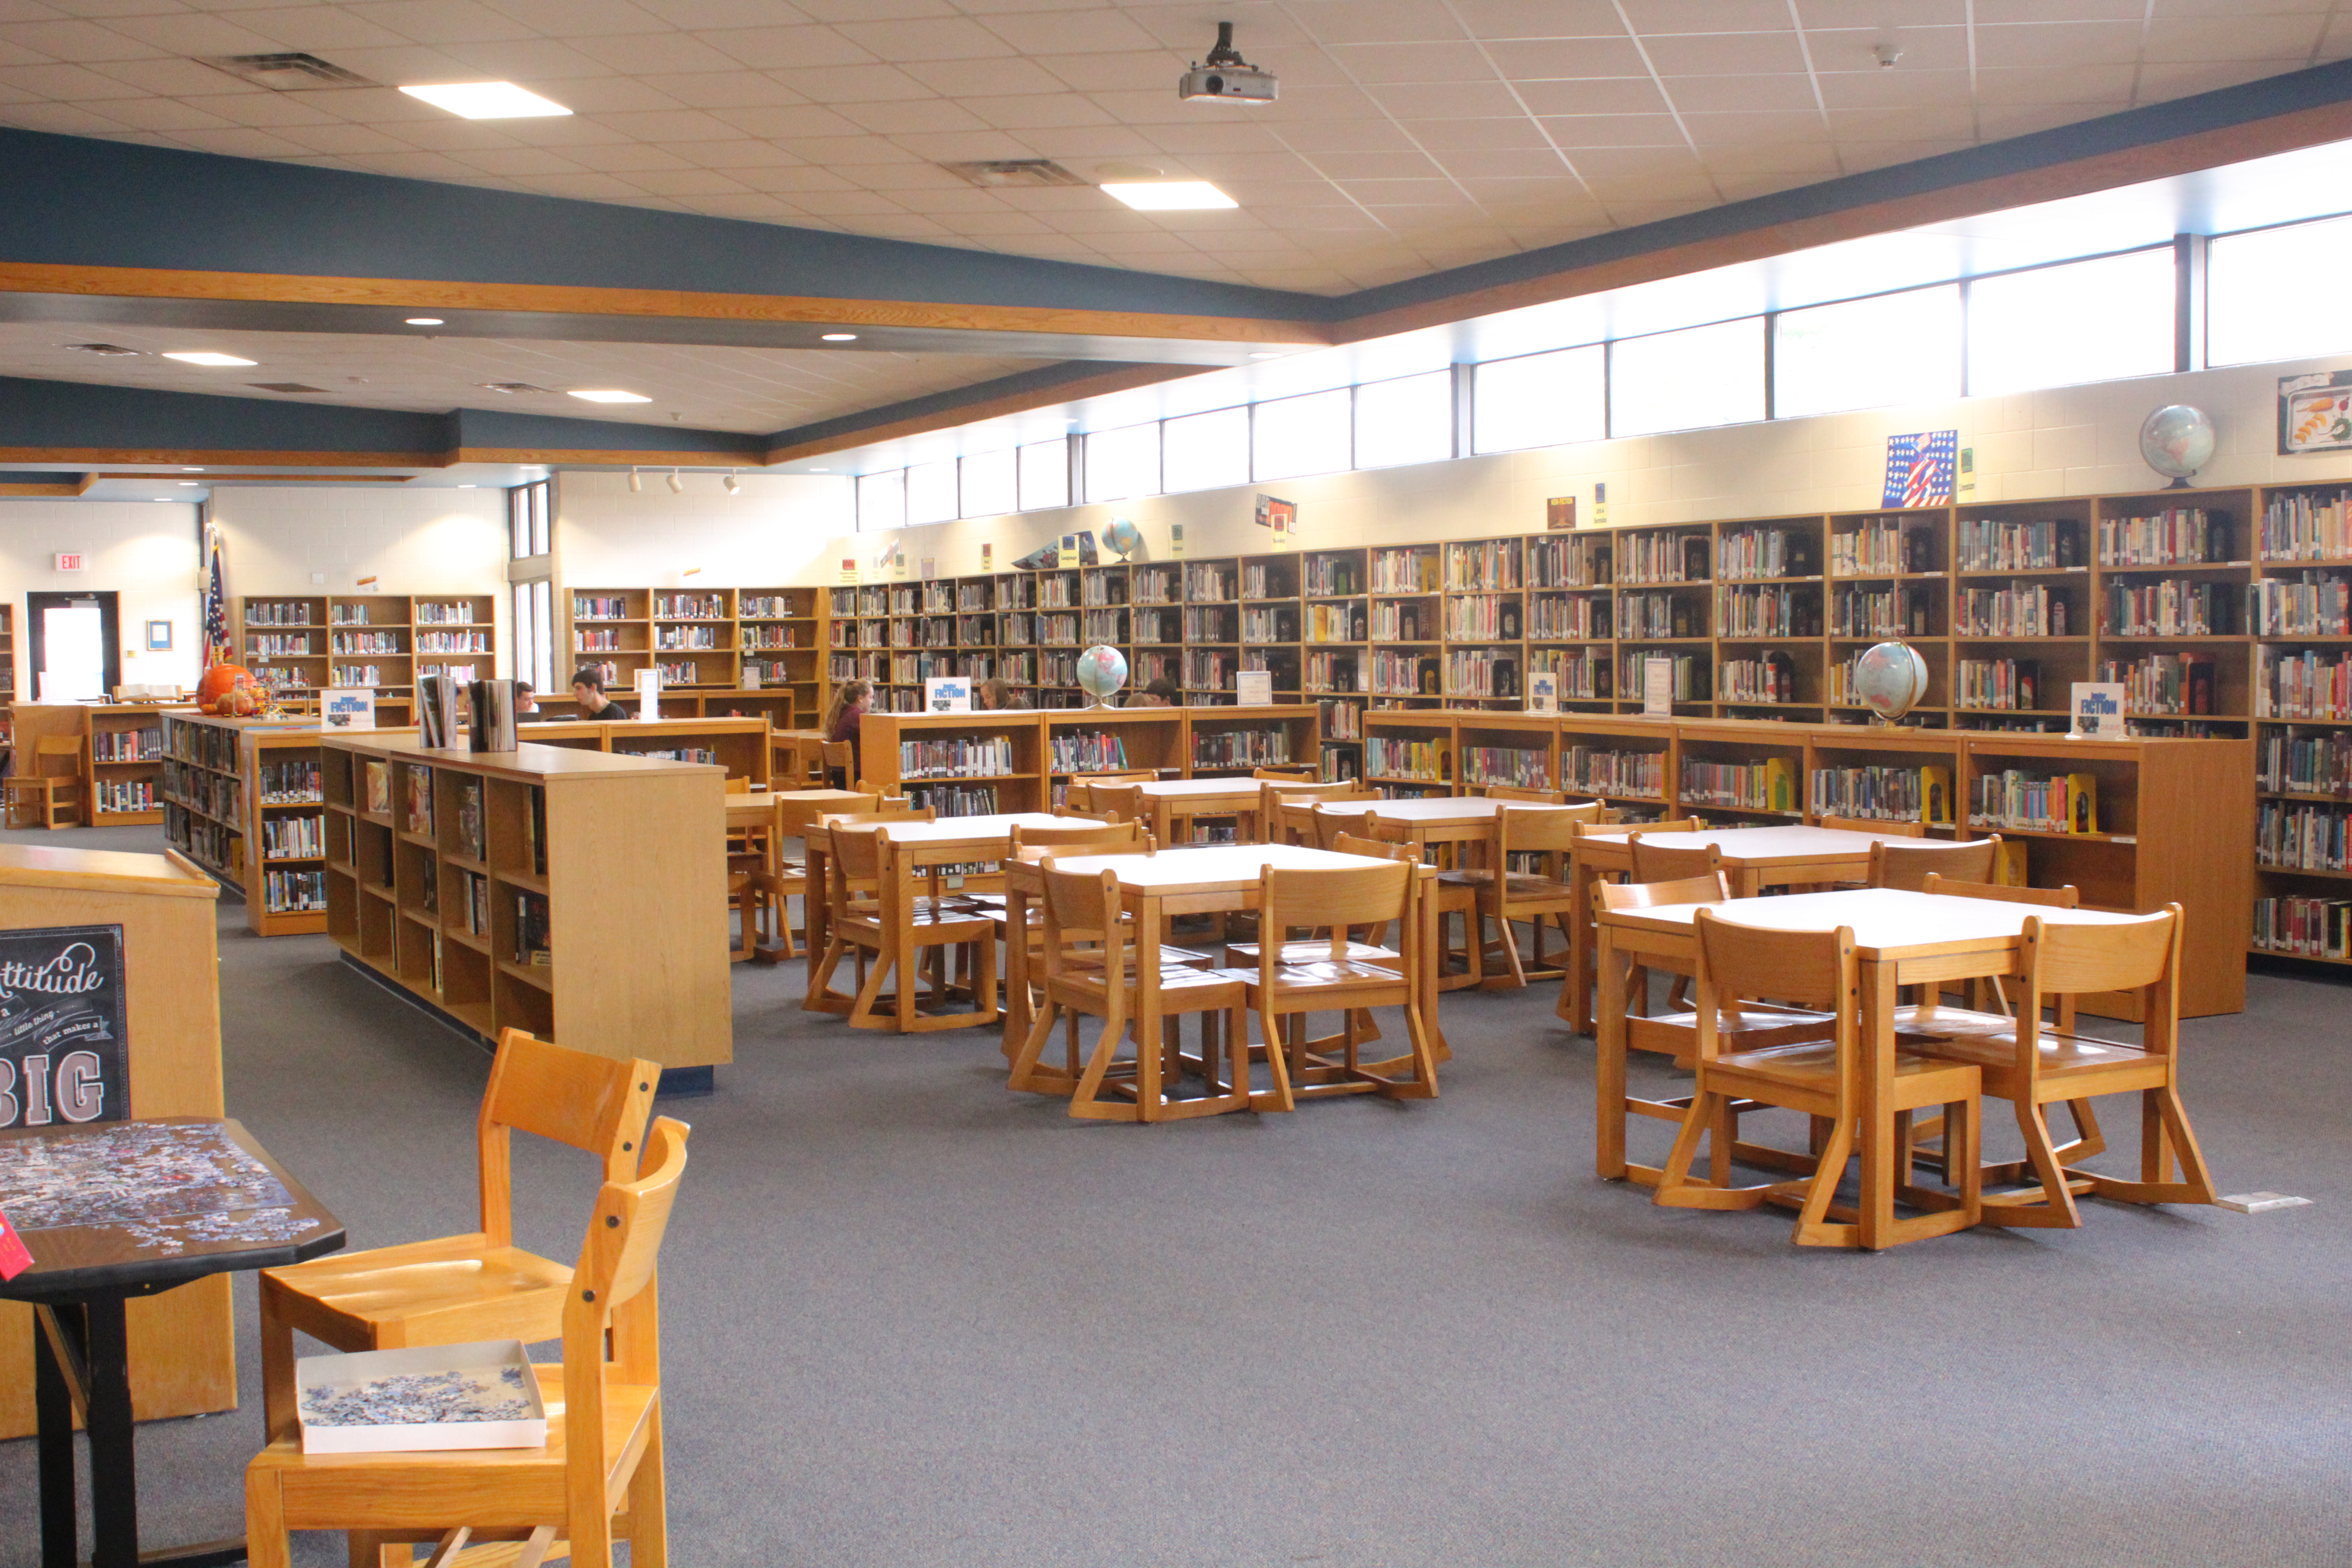 A photo of the library.